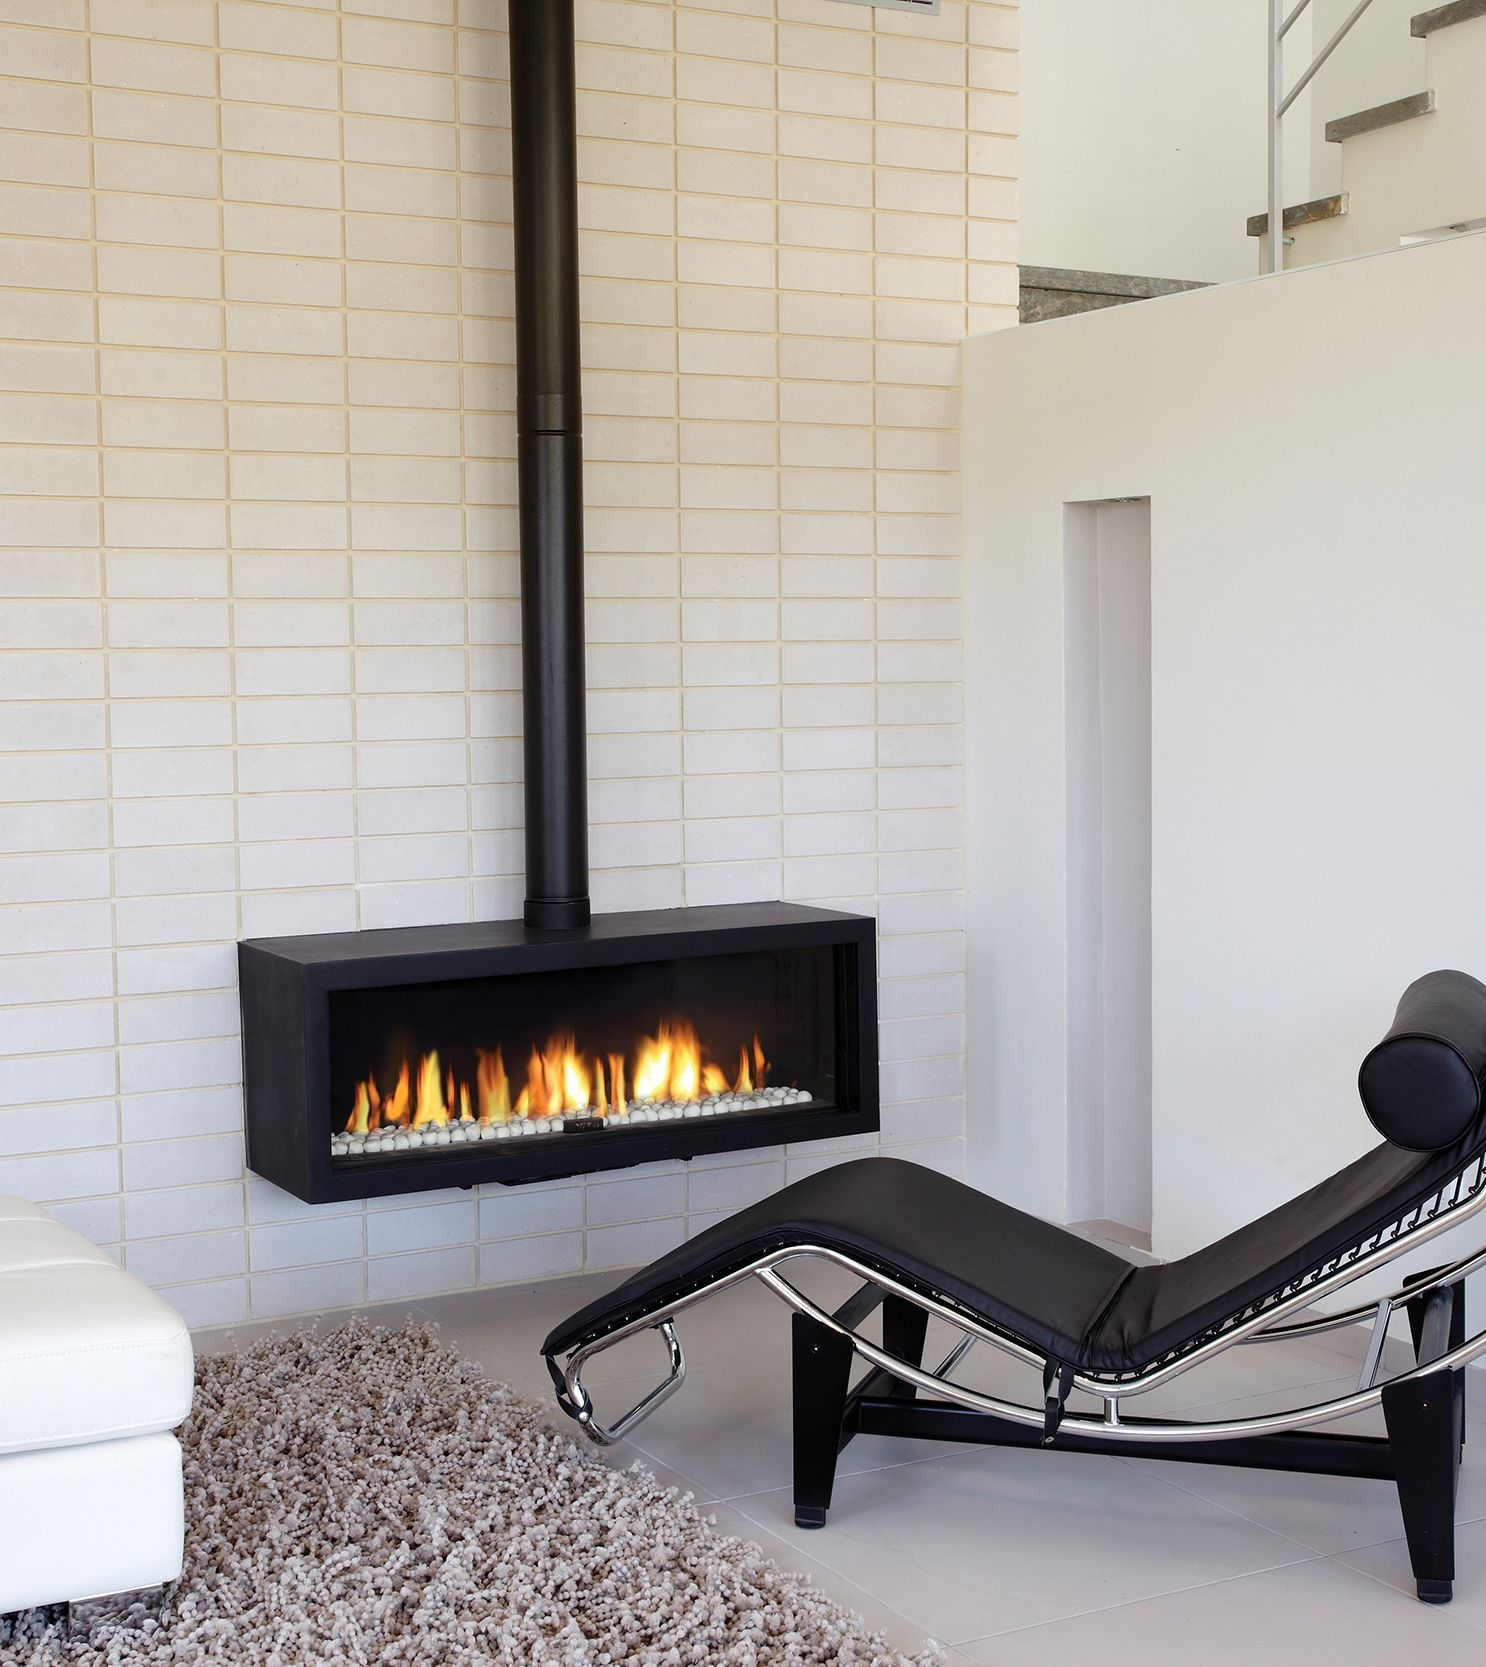 Create Your Own Modern And Minimal Vision With Our Stand Alone Fireplace Freestanding Fireplace Contemporary Gas Fireplace Standing Fireplace